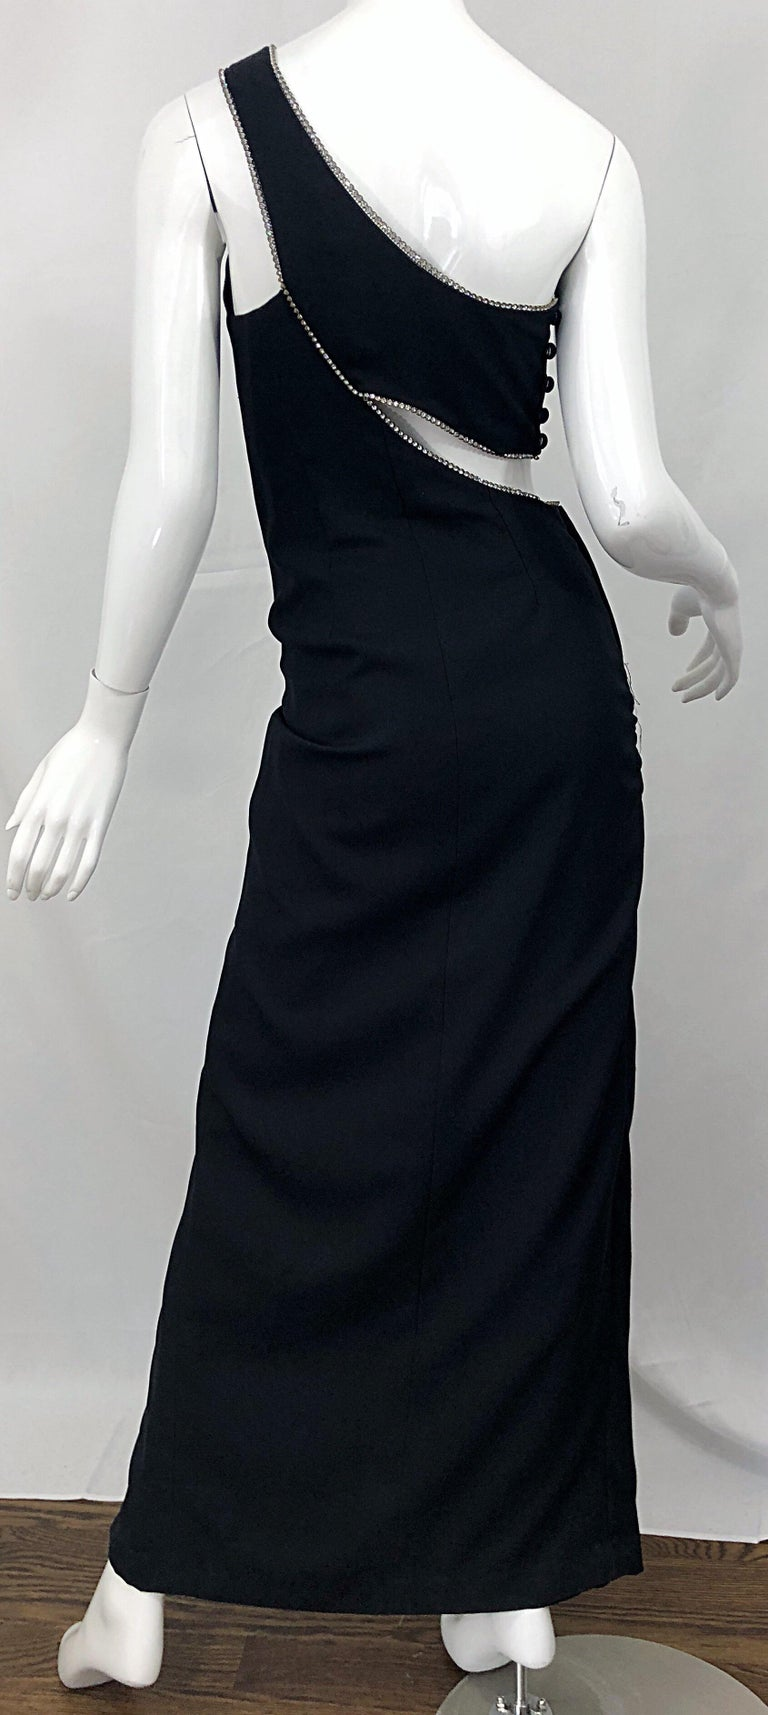 Sexy 1990s Size 6 / 8 Black Crepe Rayon + Rhinestones One Shoulder Cut Out Gown For Sale 6